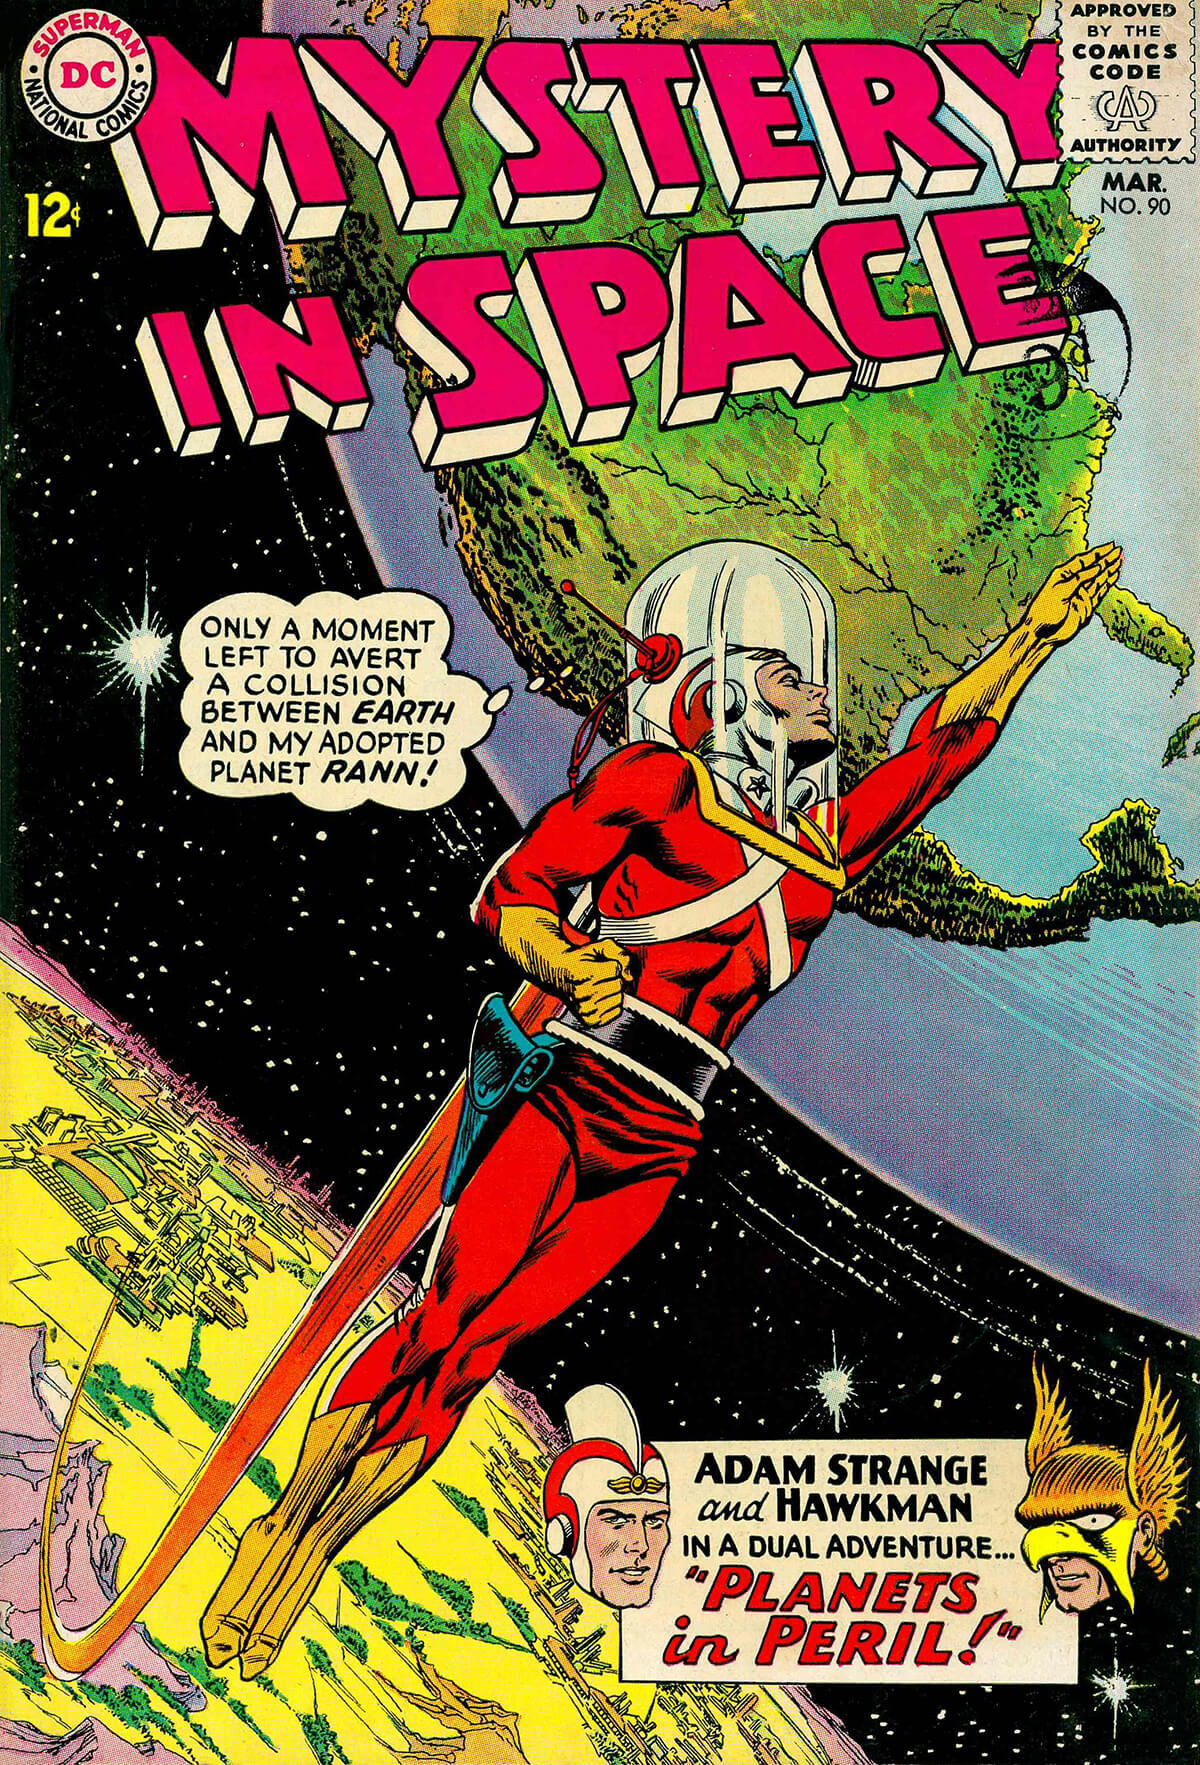 Mystery in Space 90 Cover by Carmine Infantino and Murphy Anderson